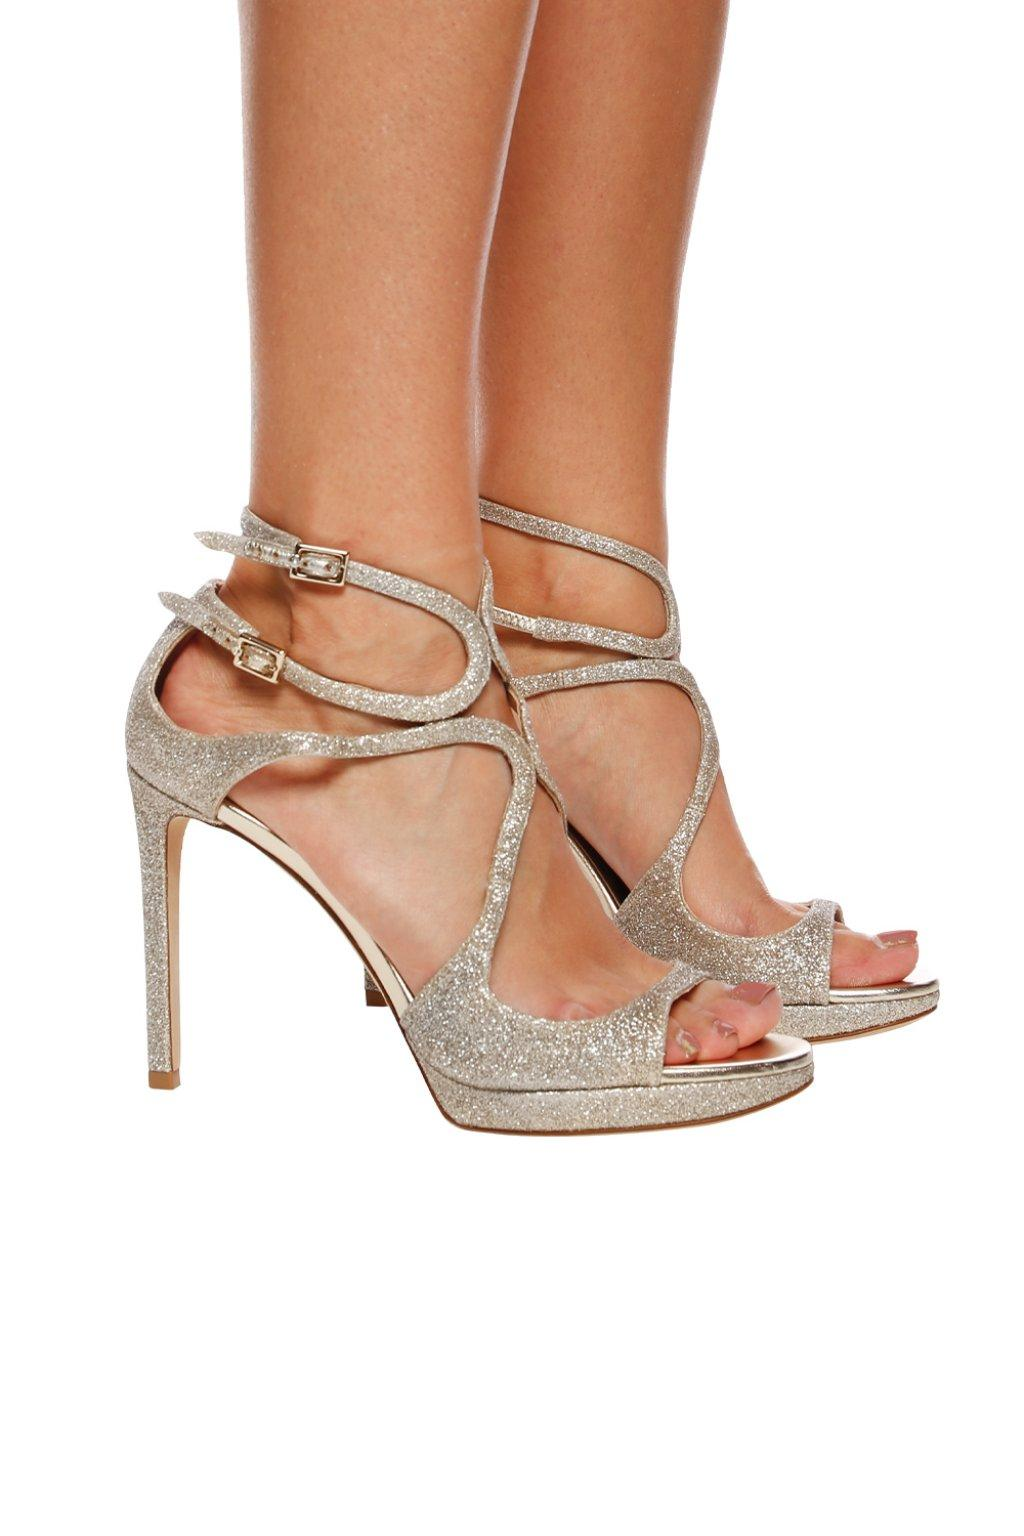 Jimmy Choo Leather 'ivette' Sandals in